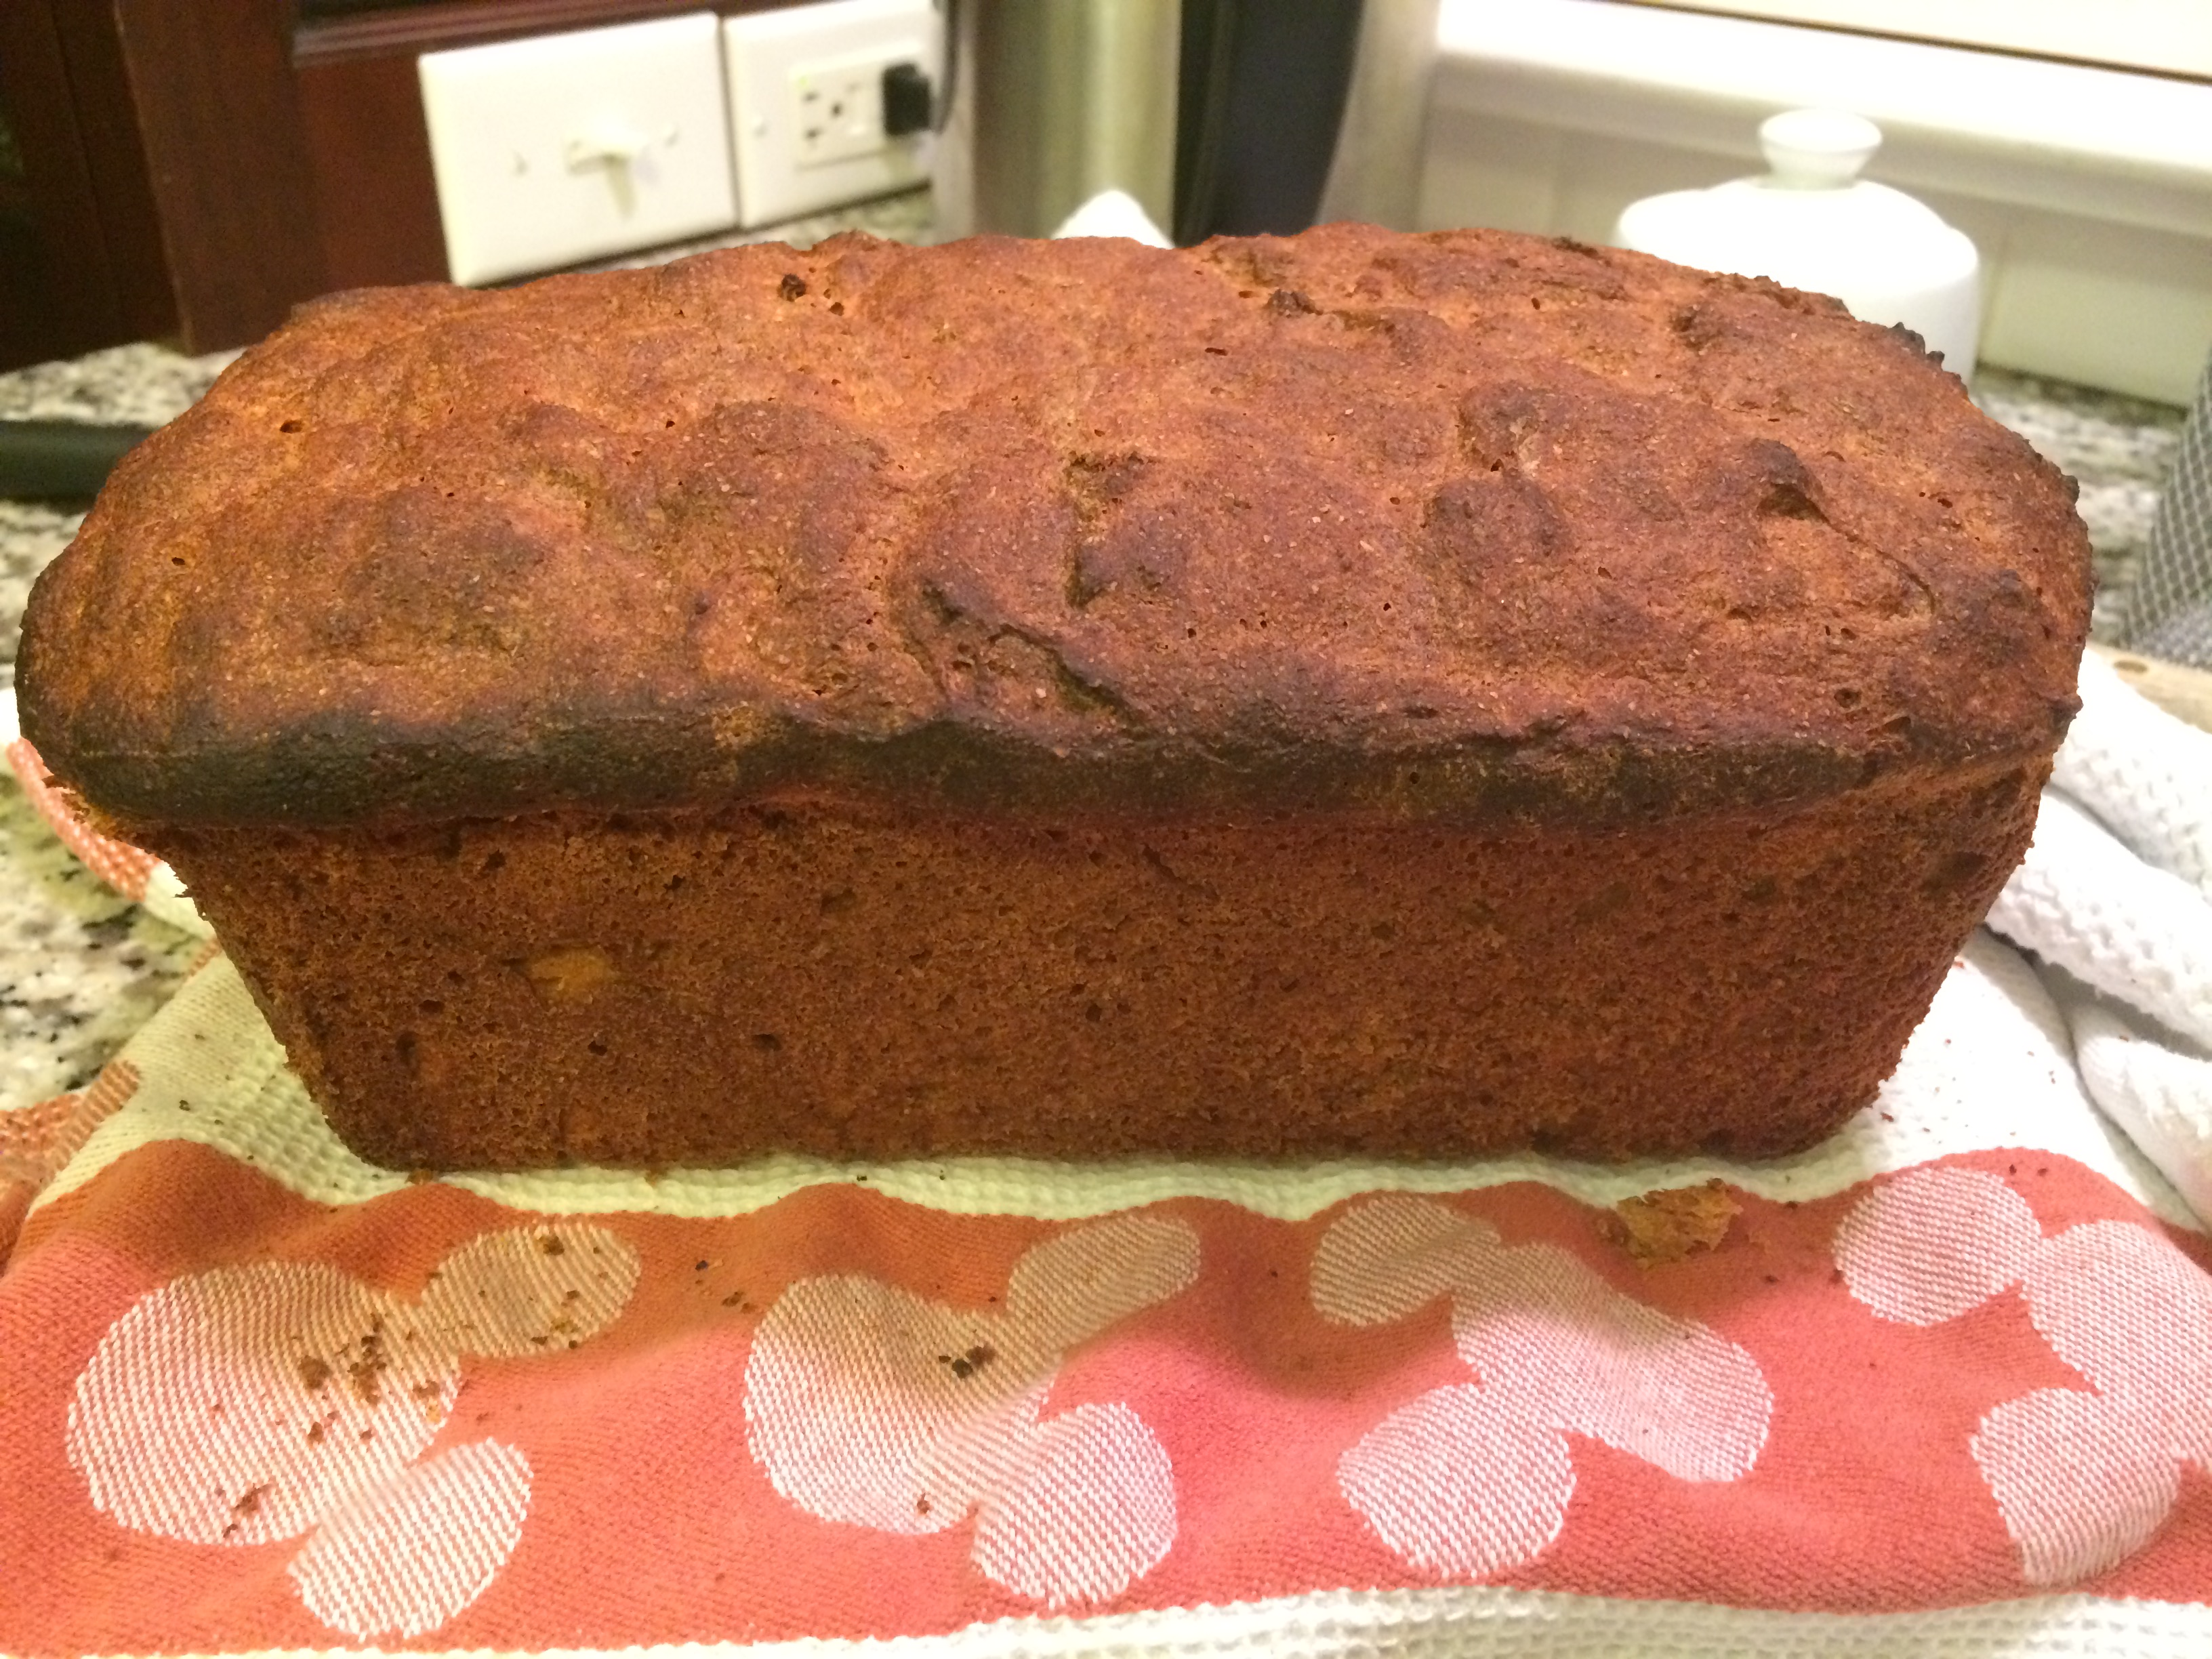 Whole Wheat Bread prior to slicing - notice the great crust!